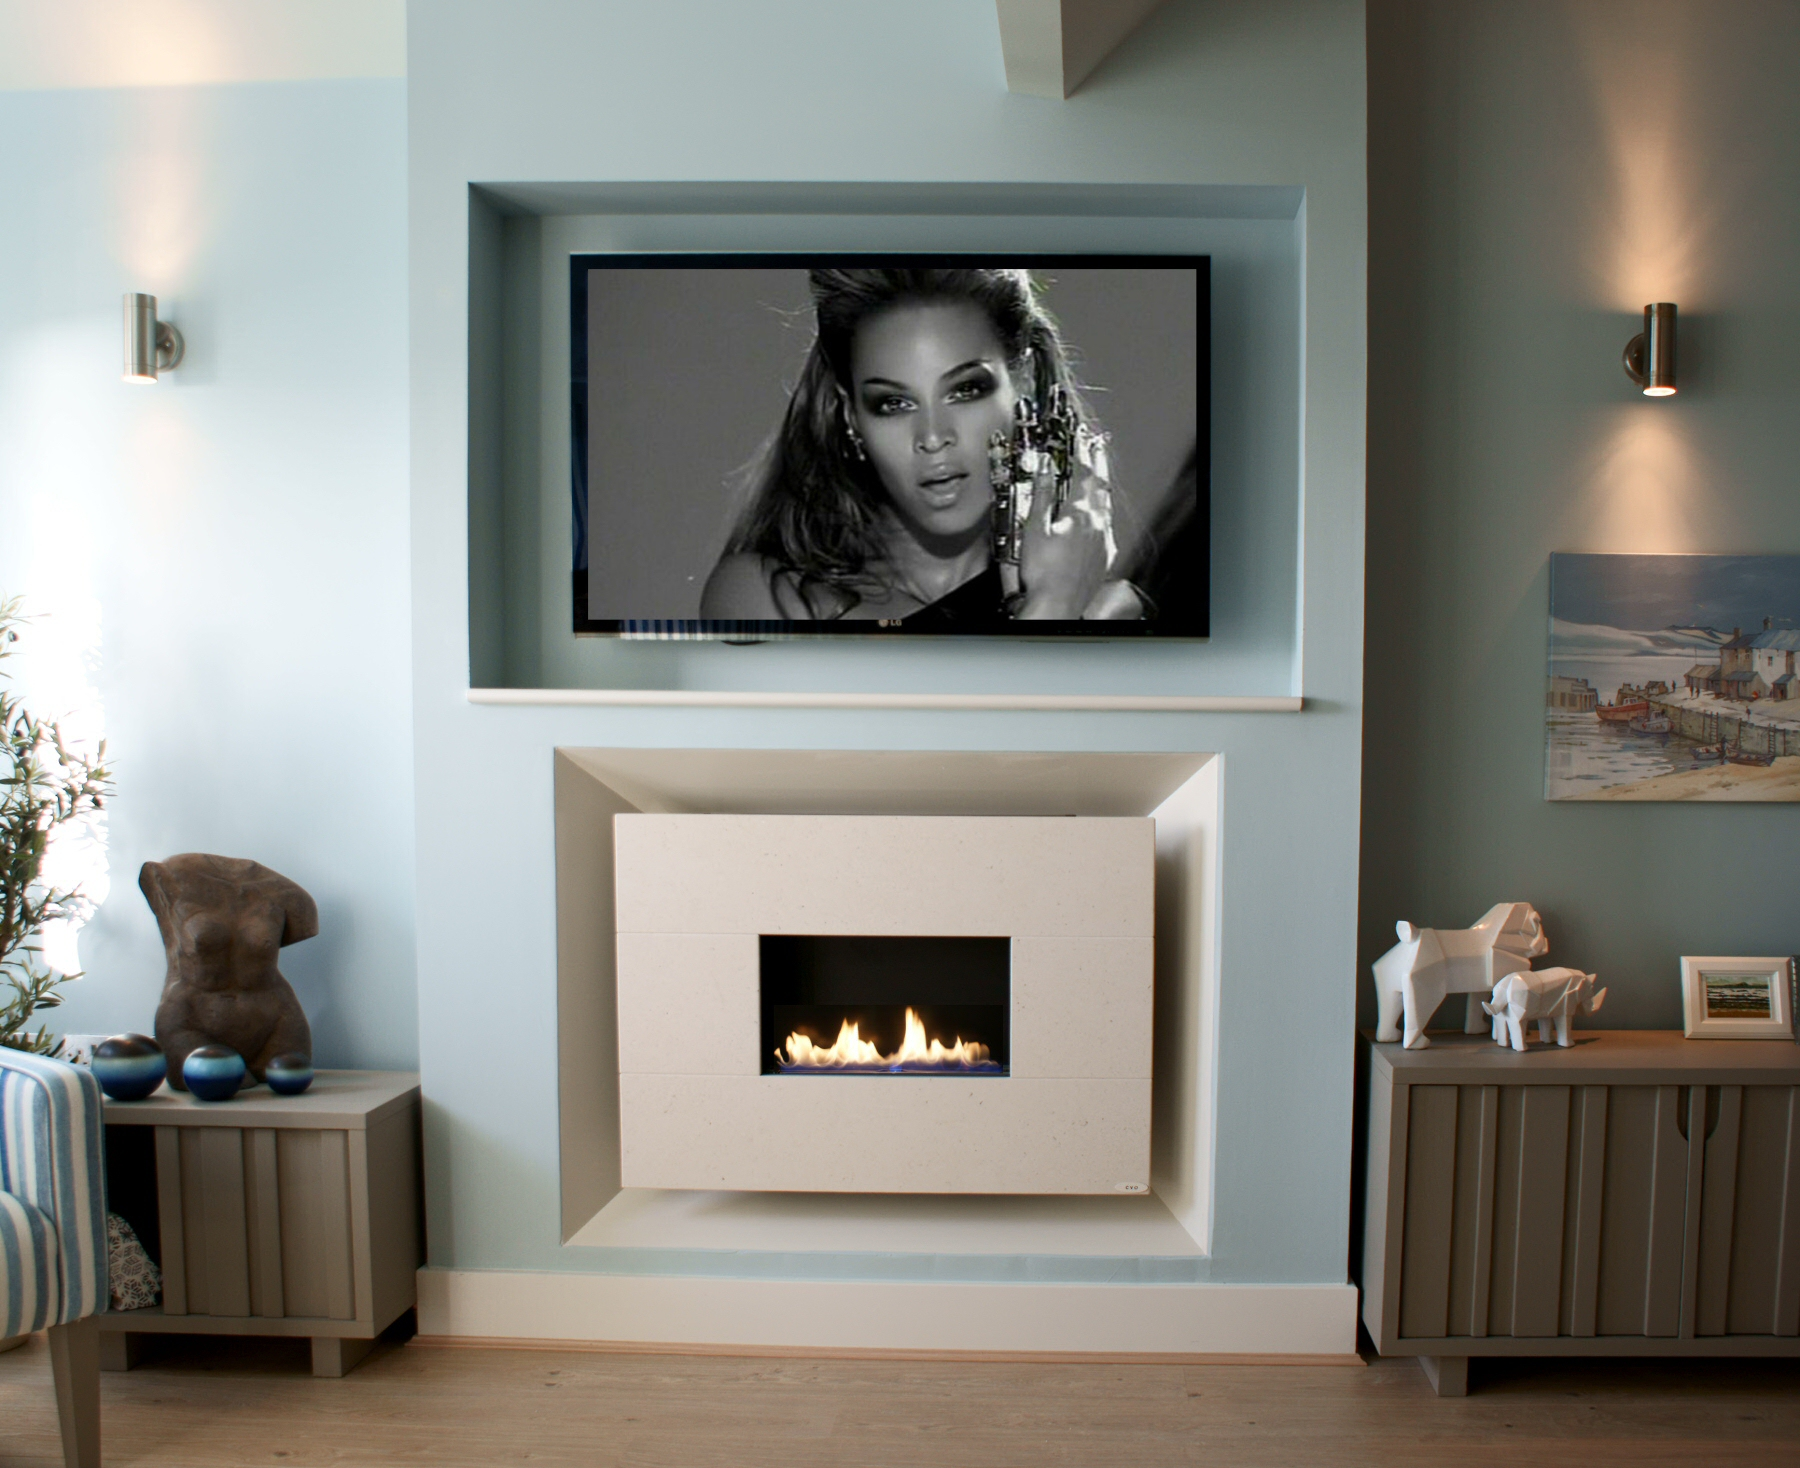 Recessed flueless gas fireplace with tv above image - Tv wall mount above fireplace ...